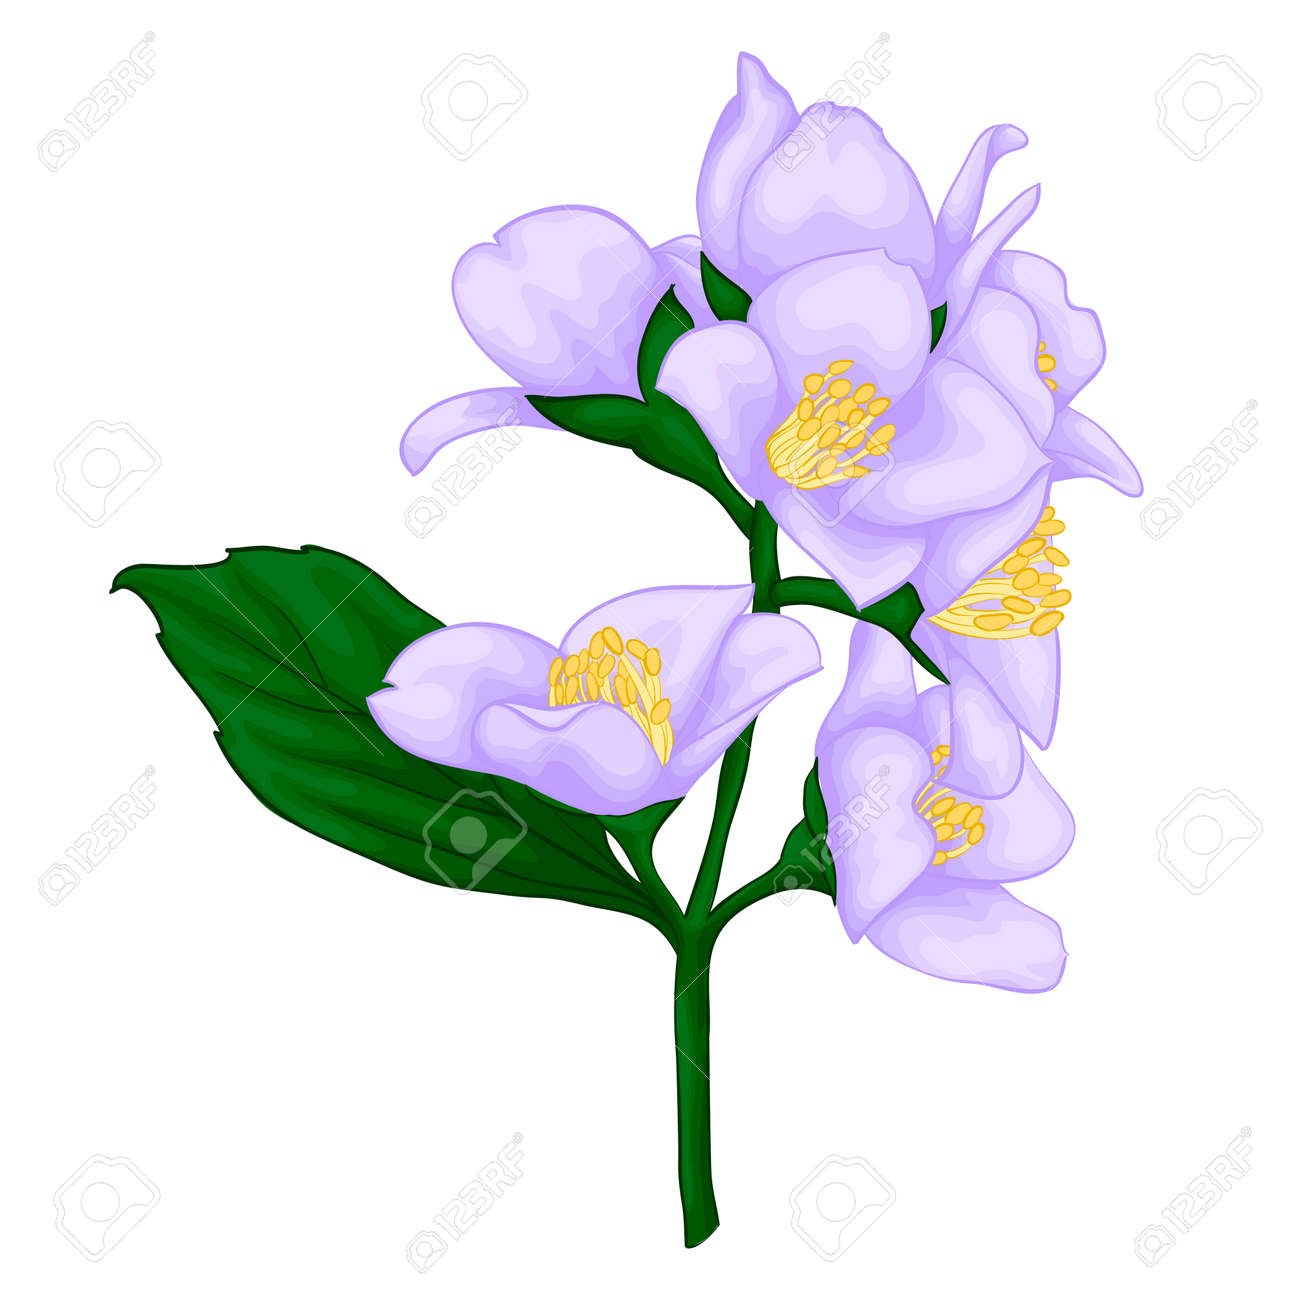 beautiful jasmine branch isolated on white background. for greeting cards and invitations of the wedding, birthday, Valentine's Day, mother's day and other seasonal holidays - 48051811